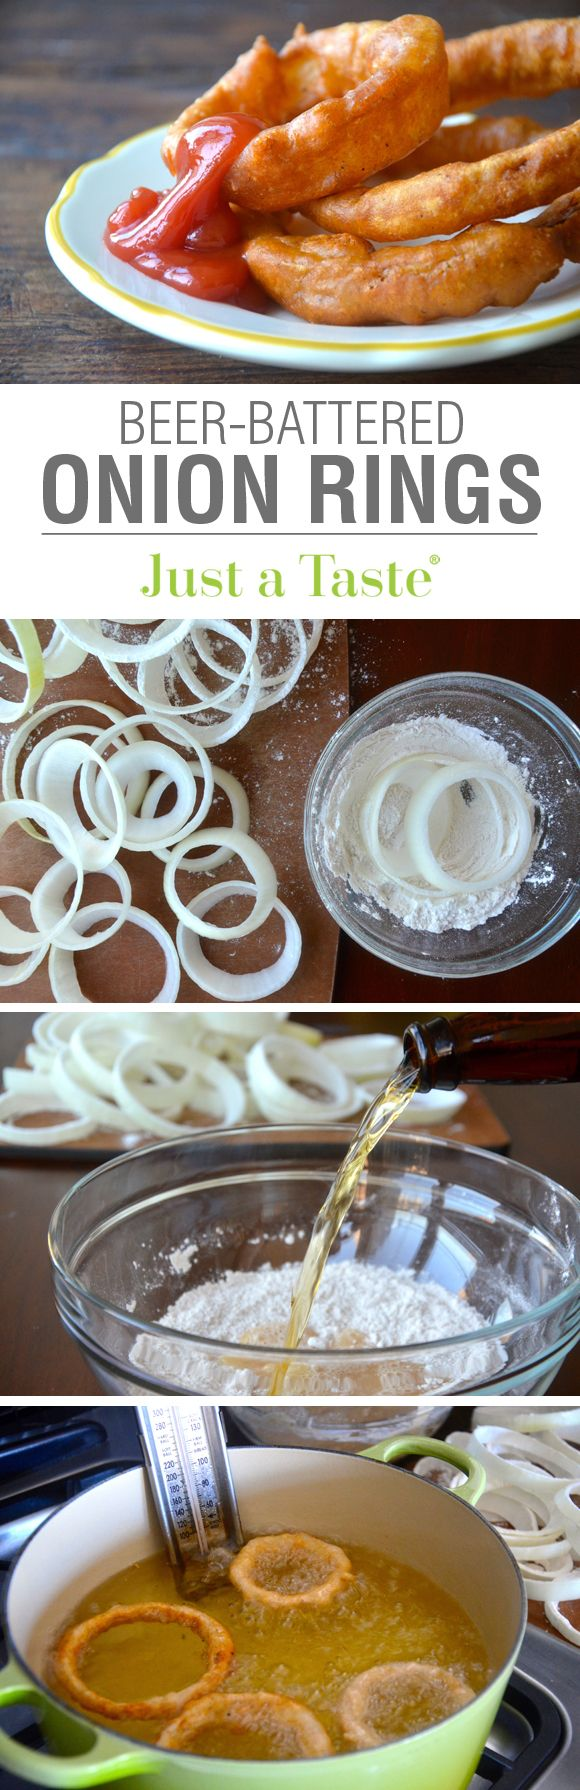 Beer-Battered Onion Rings #recipe on justataste.com